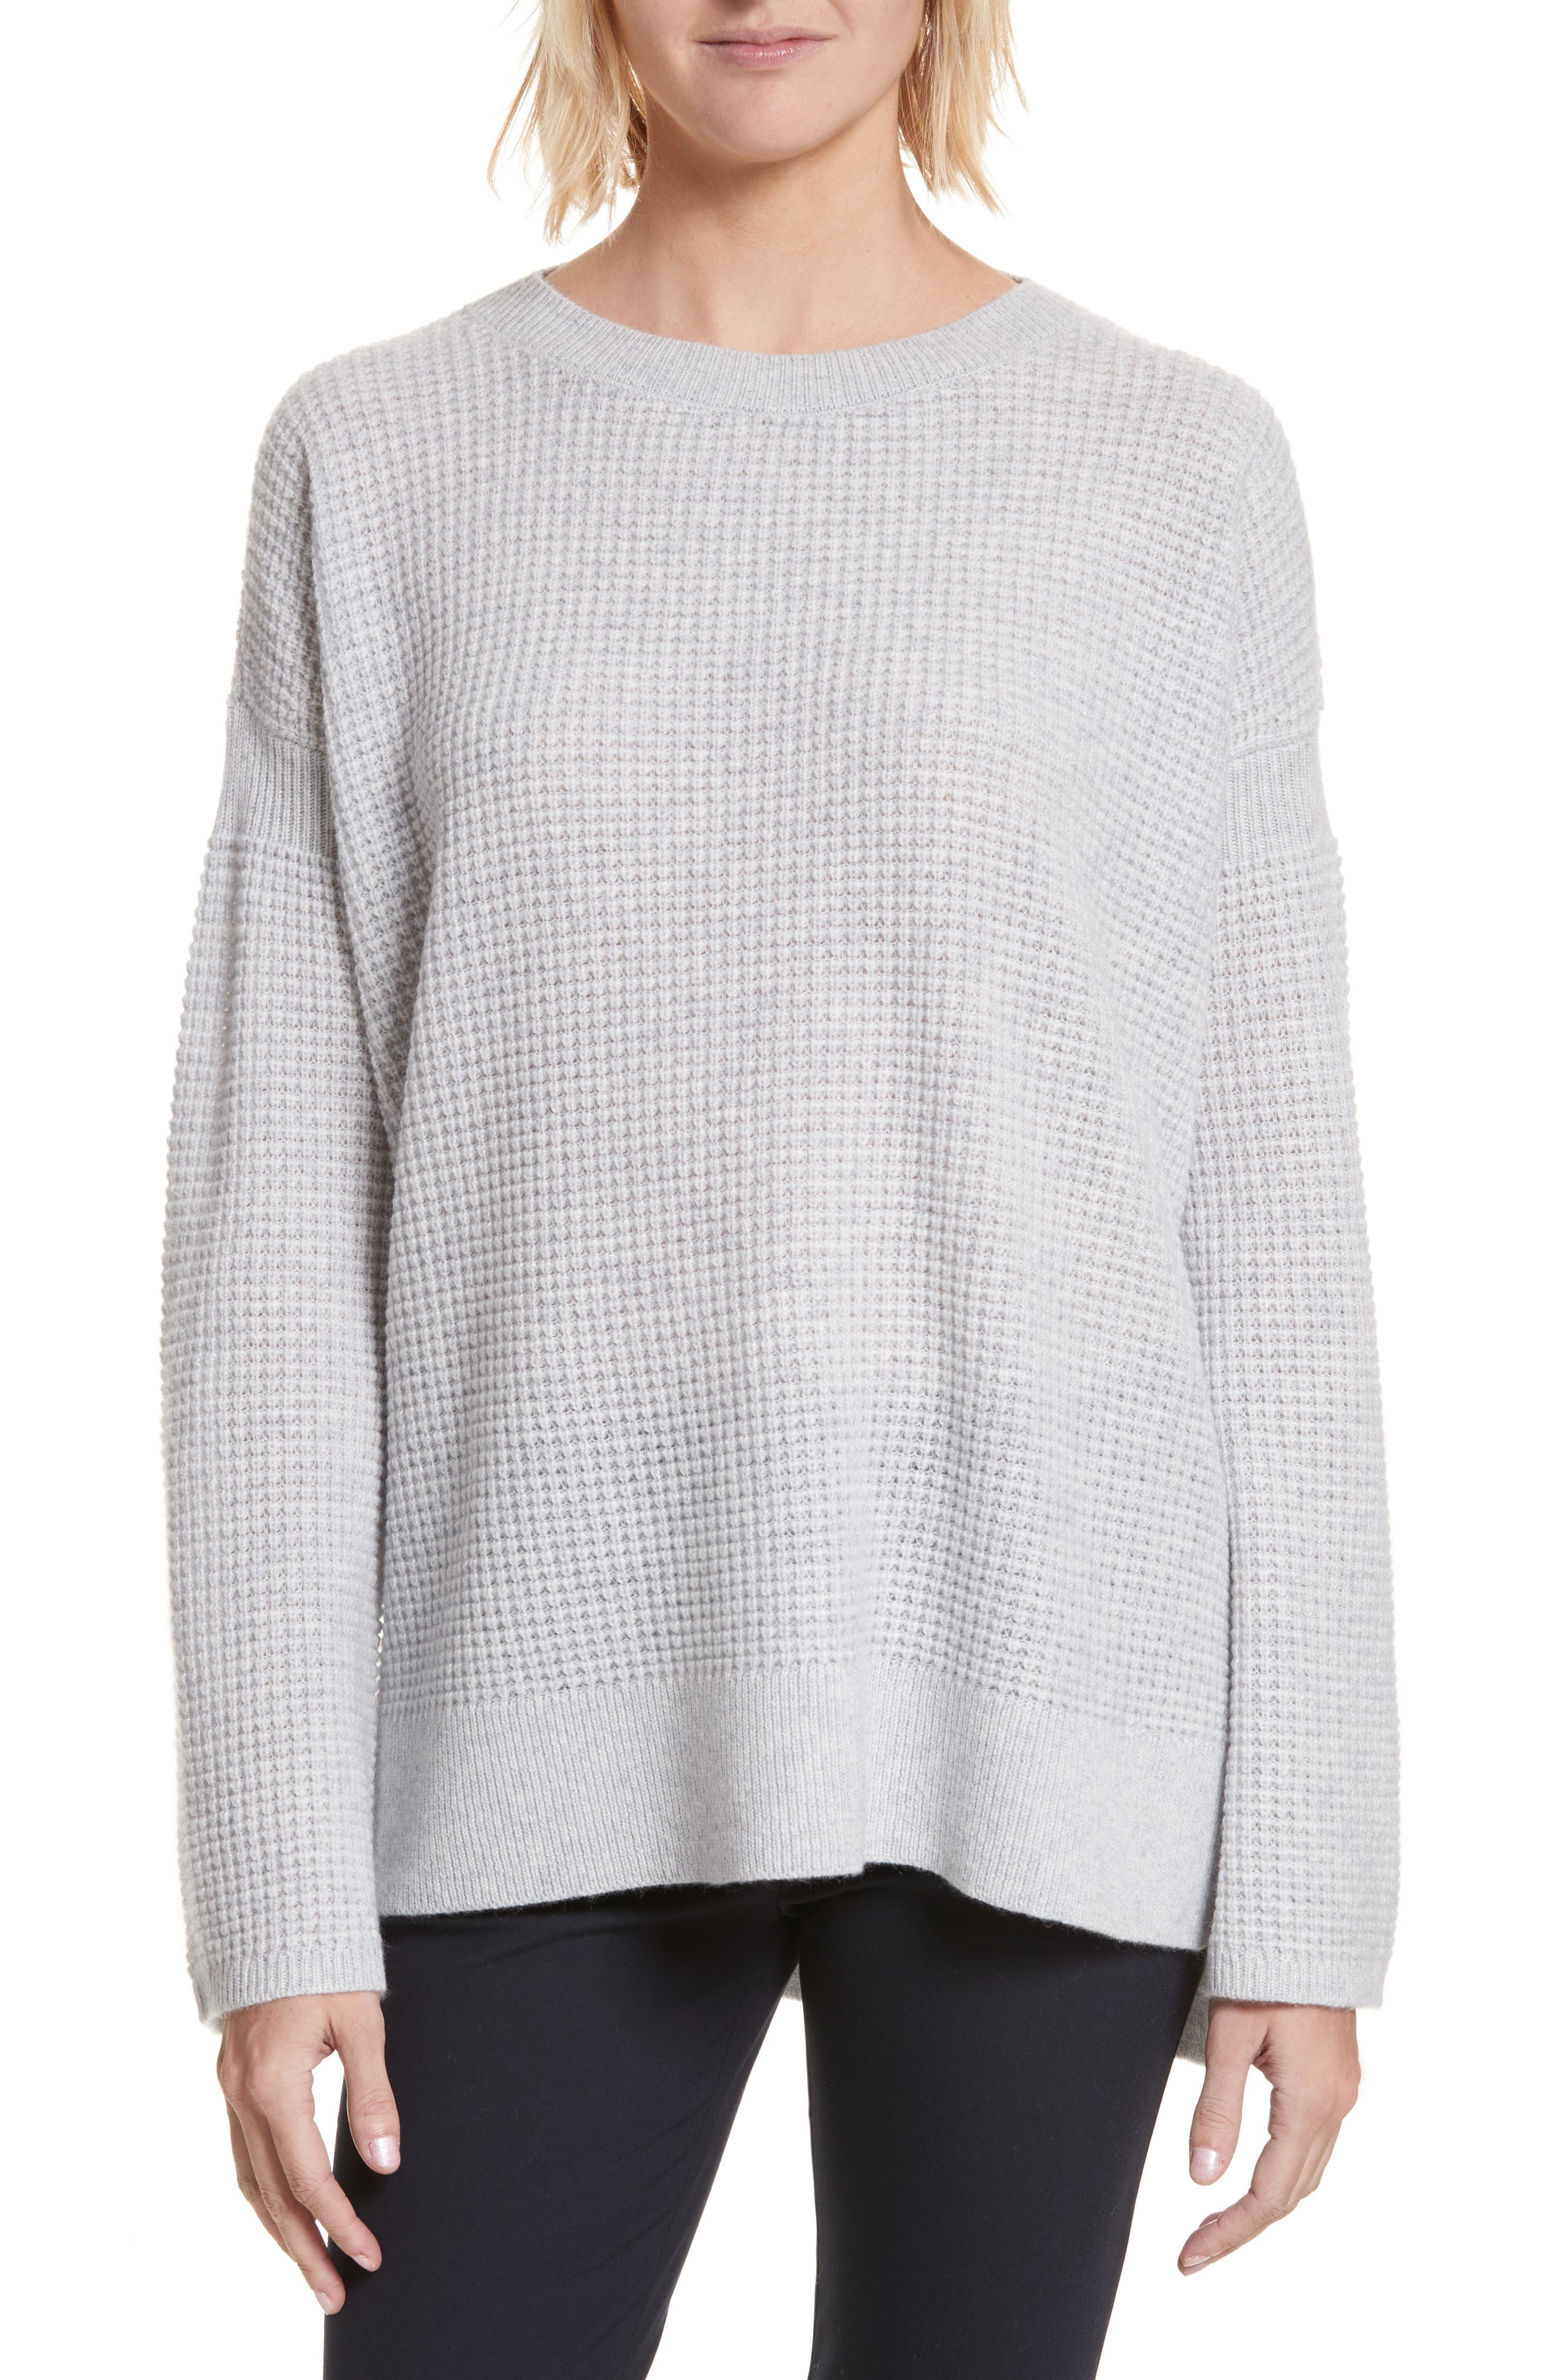 Cinch Sleeve Cashmere Sweater,                             Main thumbnail 1, color,                             Whale Grey